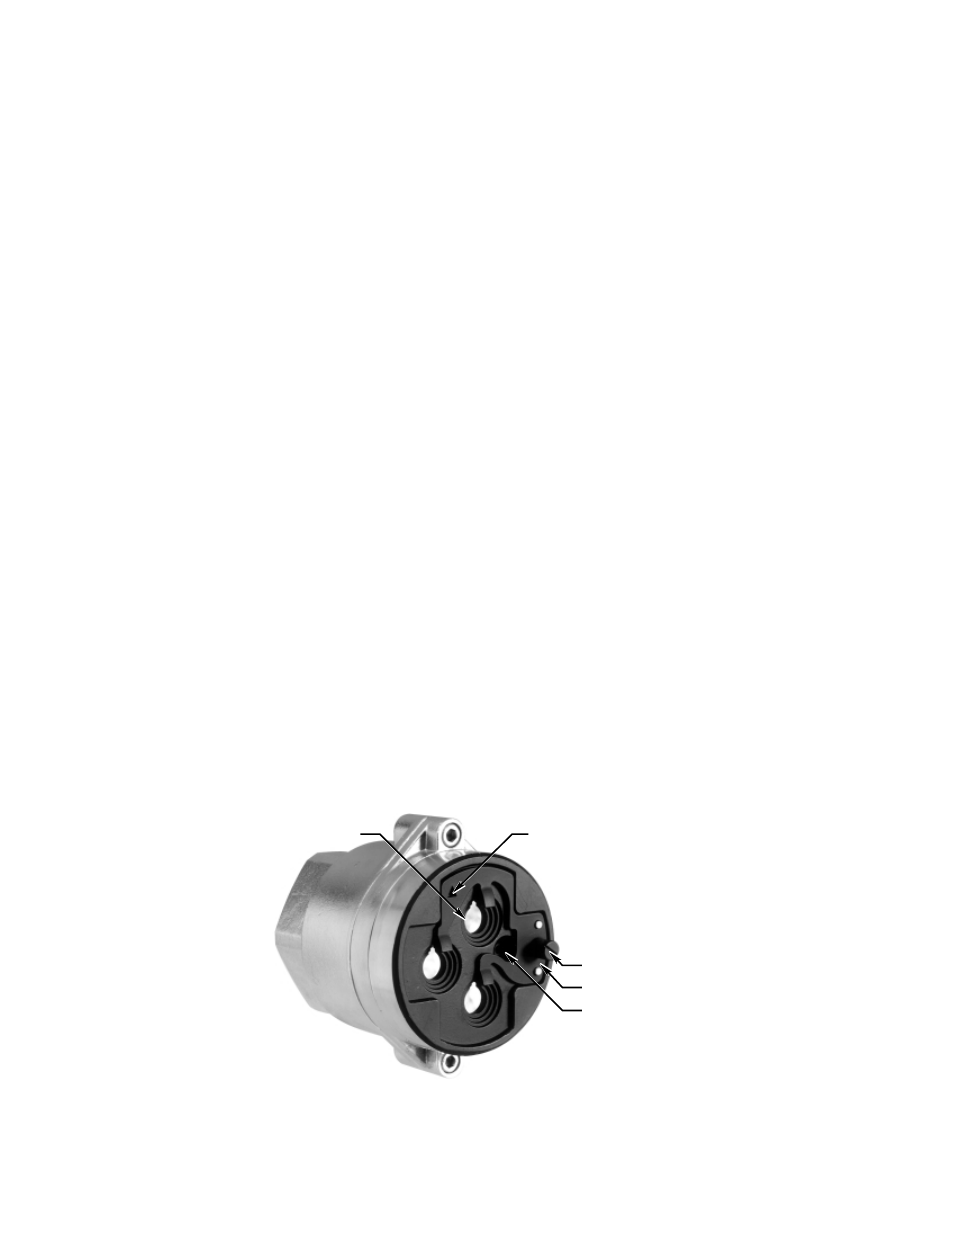 Mounting And Wiring Procedure Det Tronics X3300 Protect Ir How To Install Surfacemounted Conduit With Metal Multispectrum Flame Detector Pulse Output User Manual Page 6 27